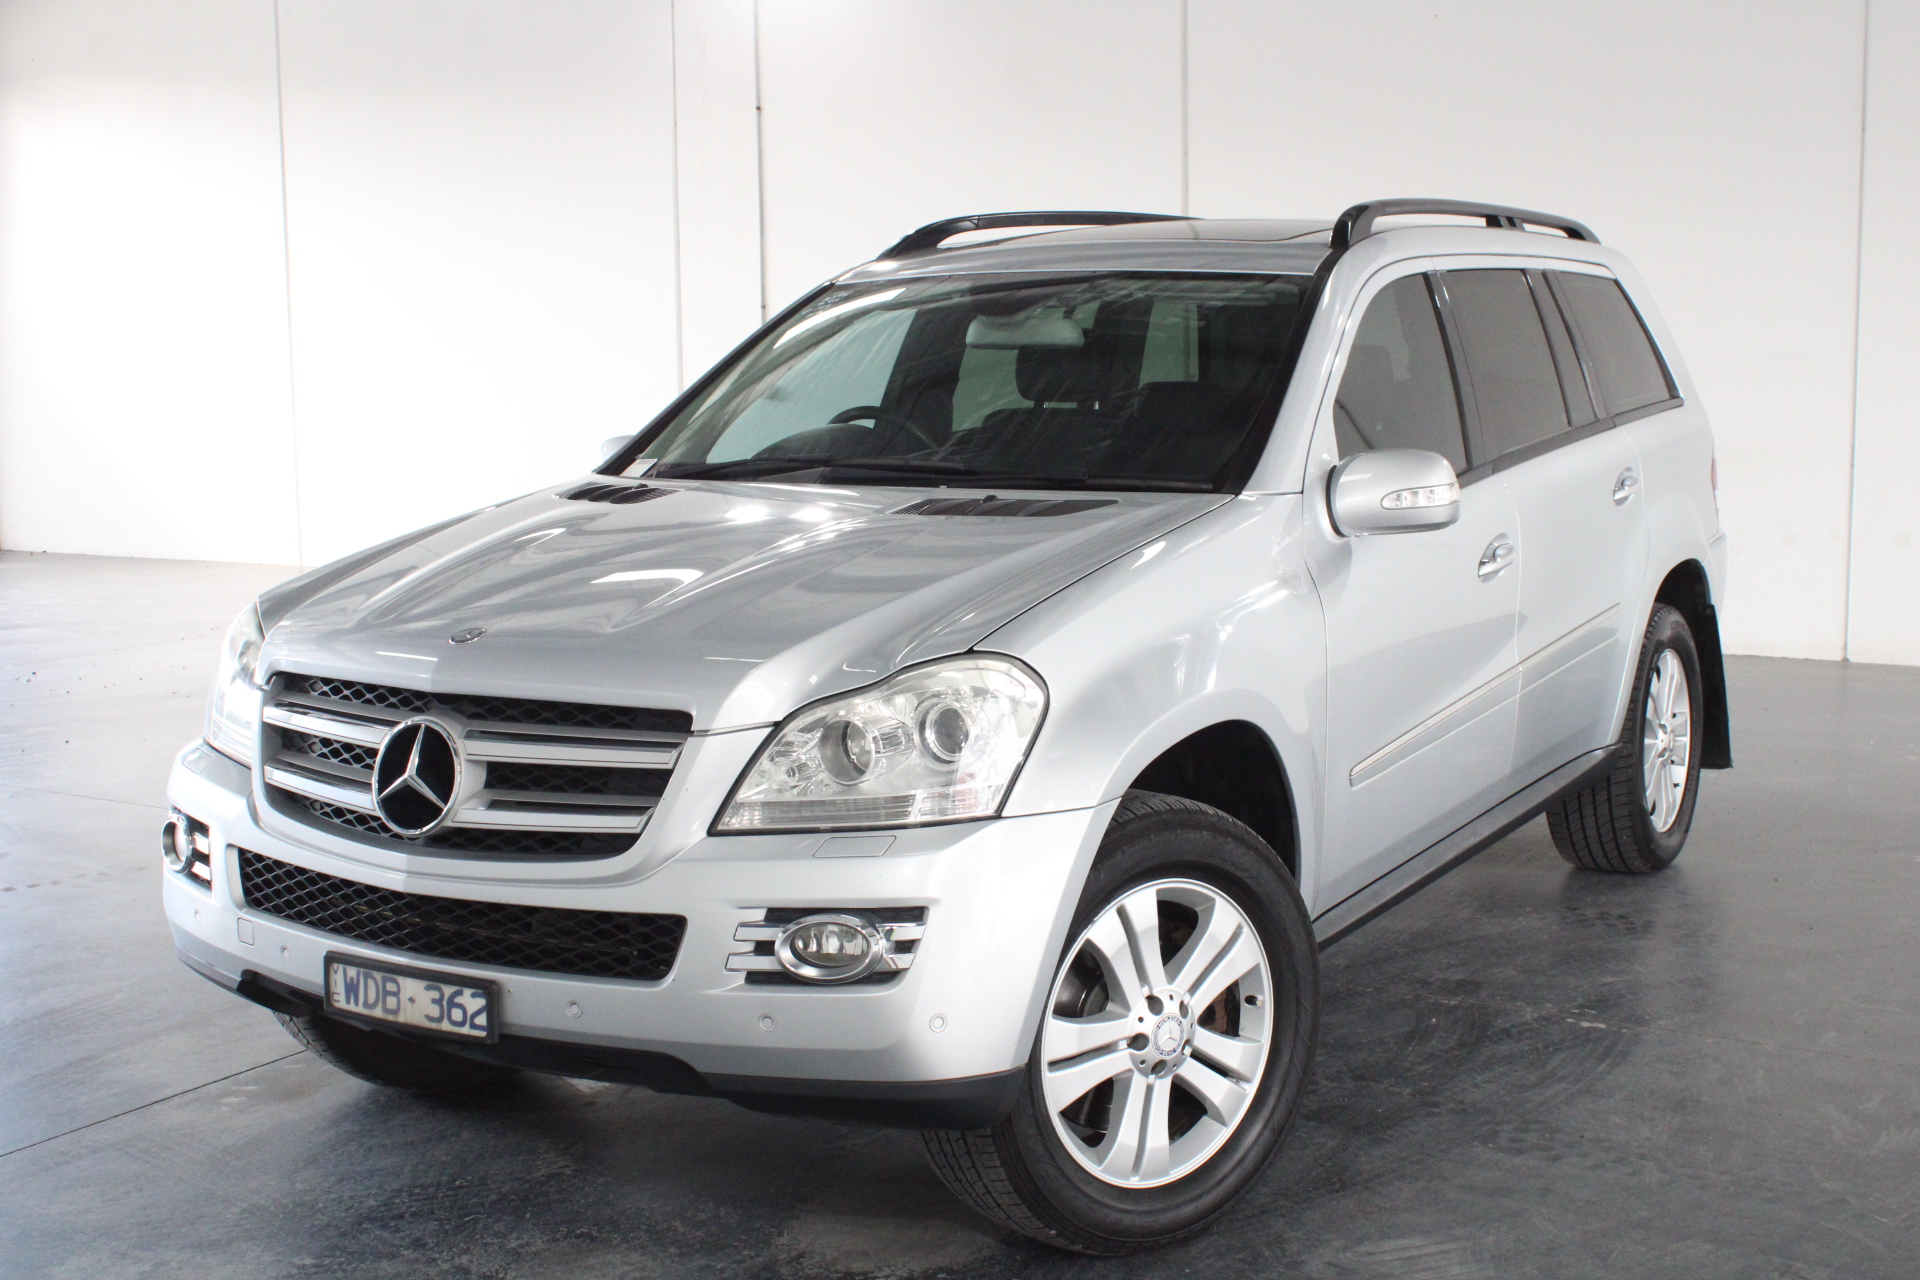 2007 Mercedes-Benz GL320 GL 320 CDI Turbo Diesel Automatic 7 Seats SUV